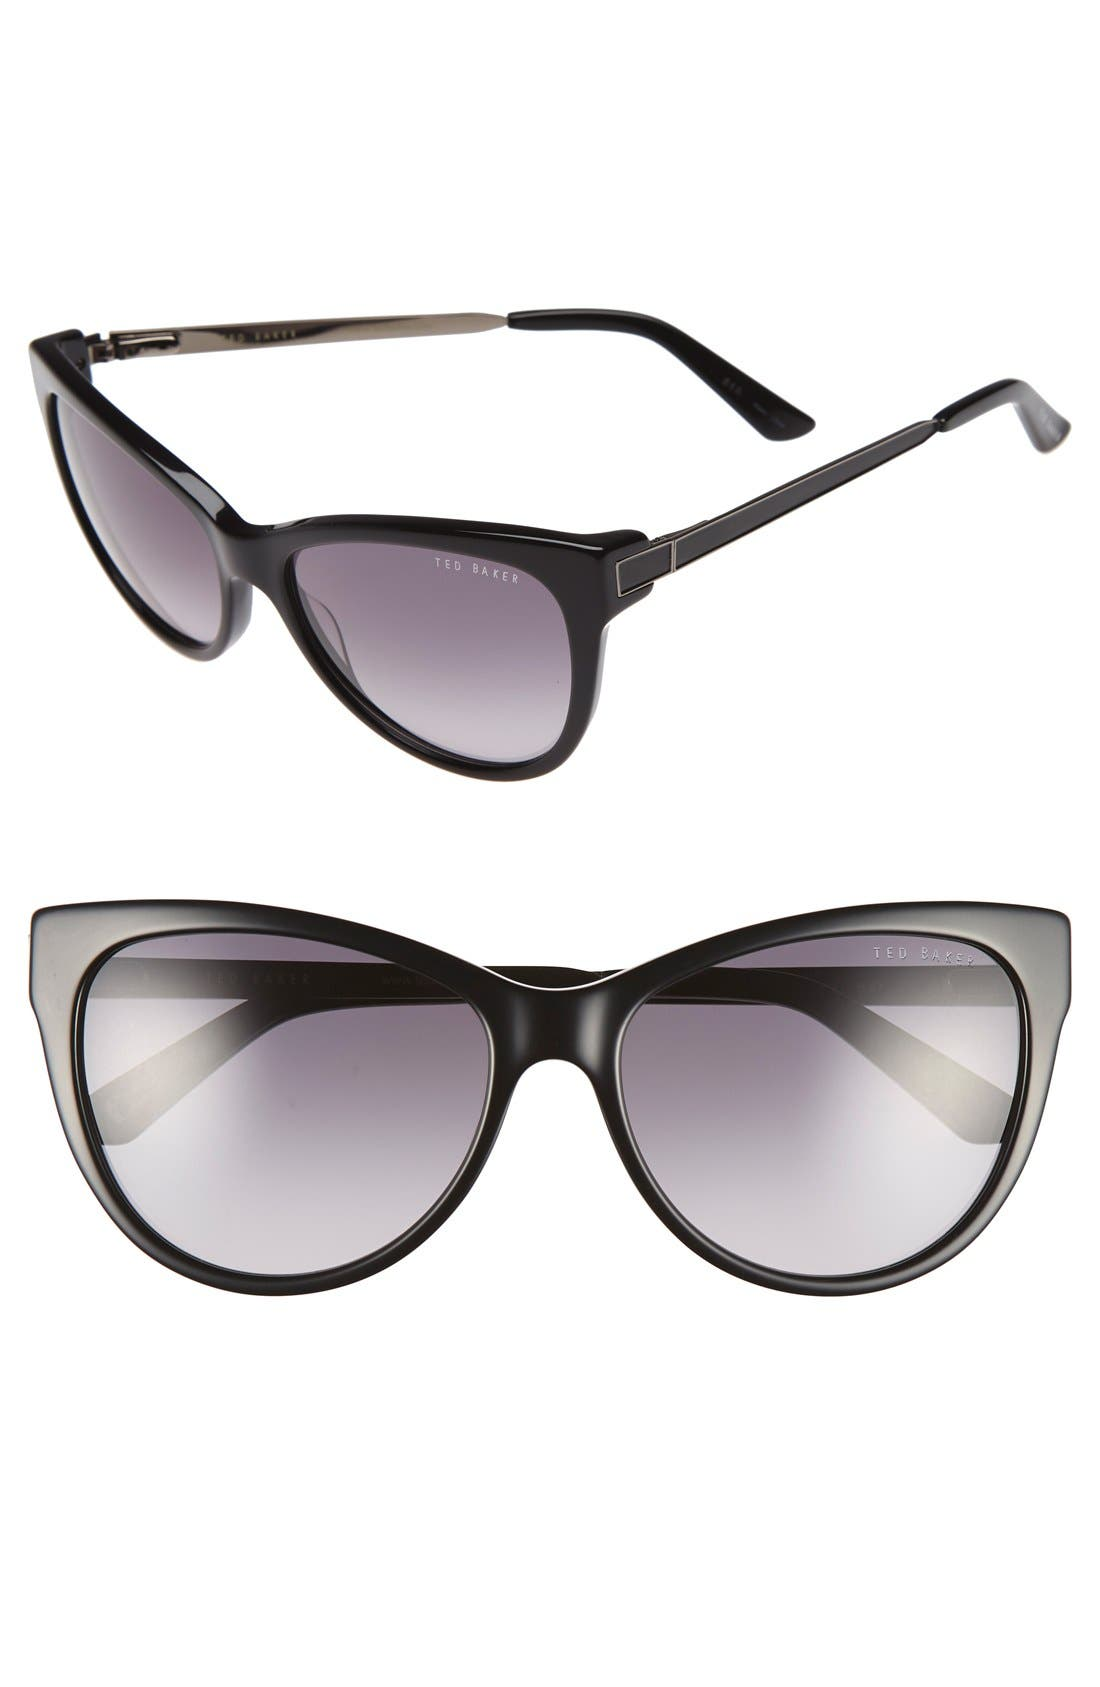 57mm Cat Eye Sunglasses,                             Main thumbnail 1, color,                             001